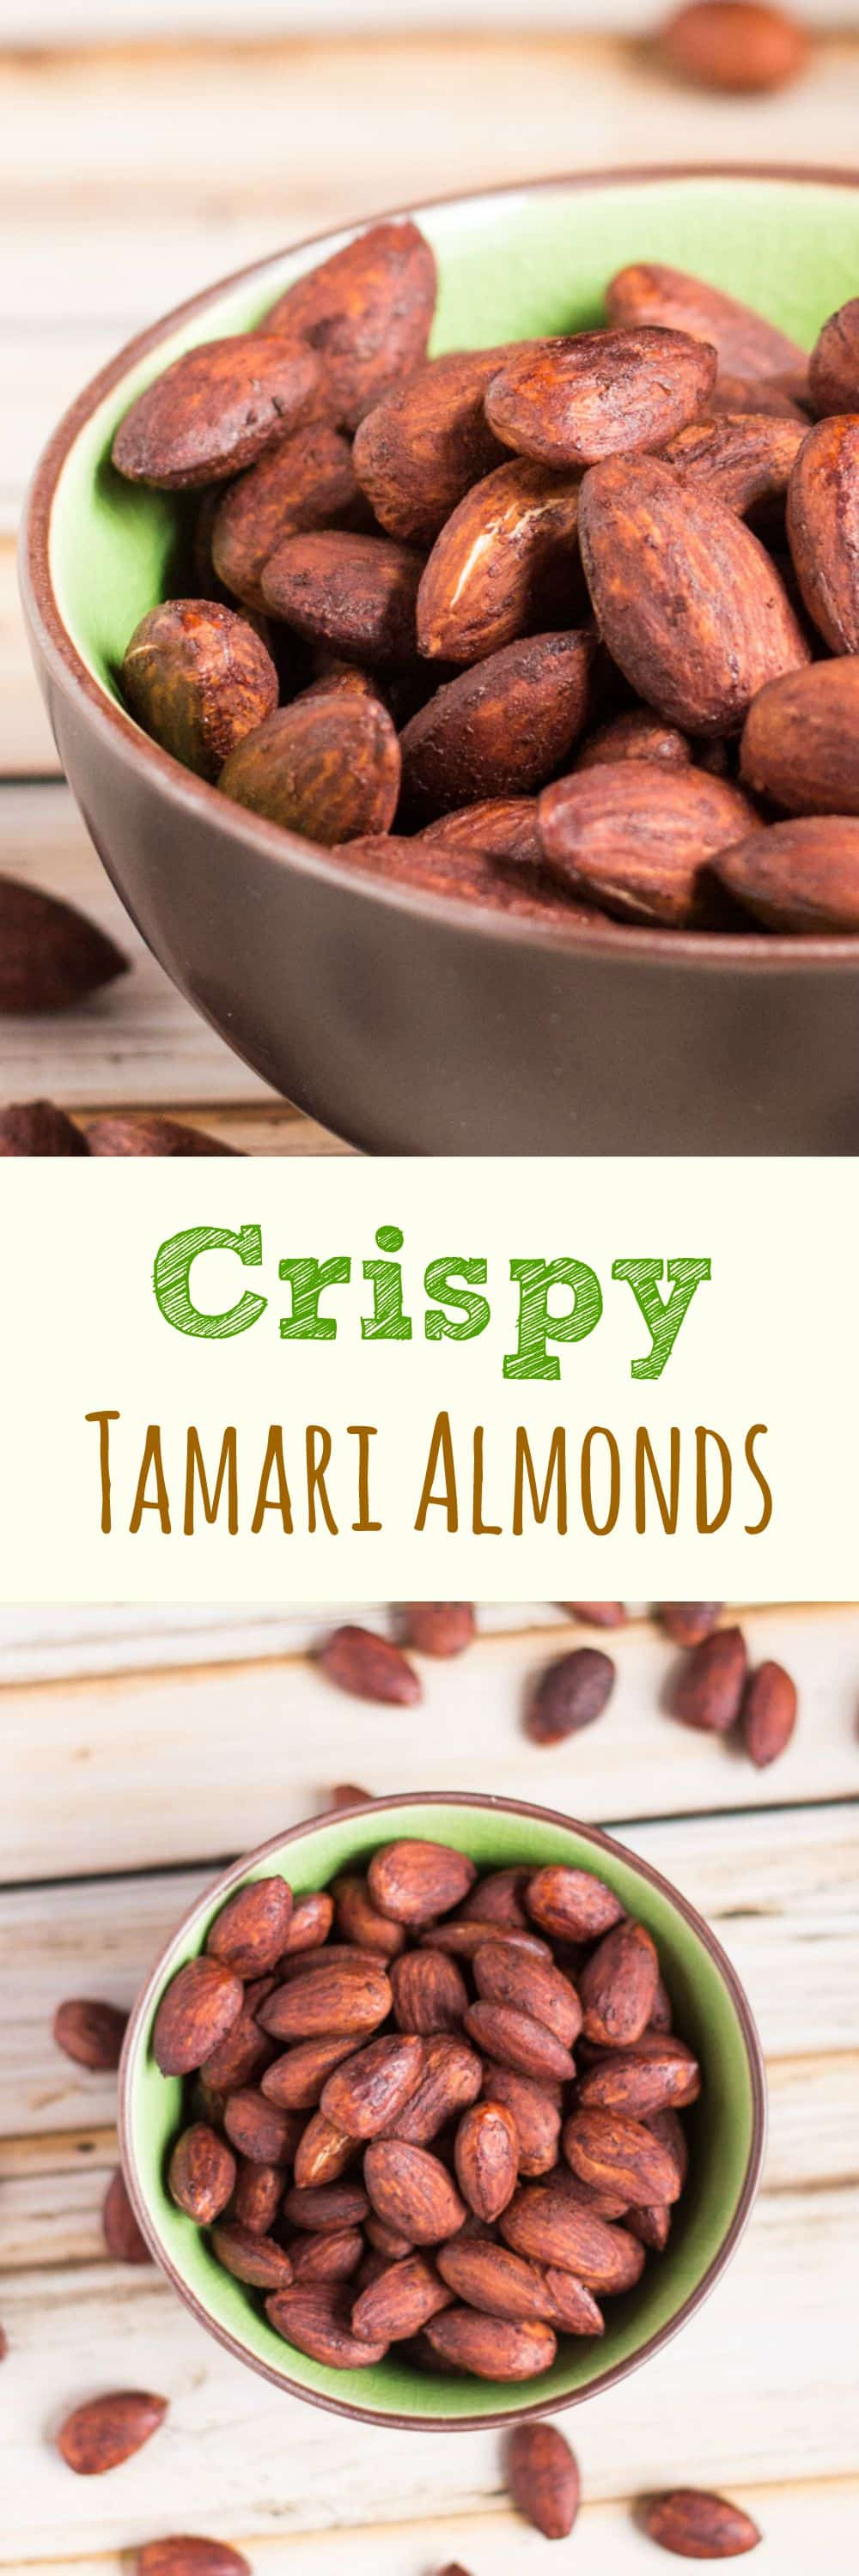 Crispy Tamari Almonds are the perfect snack when you are craving something slightly salty, but really good for you.